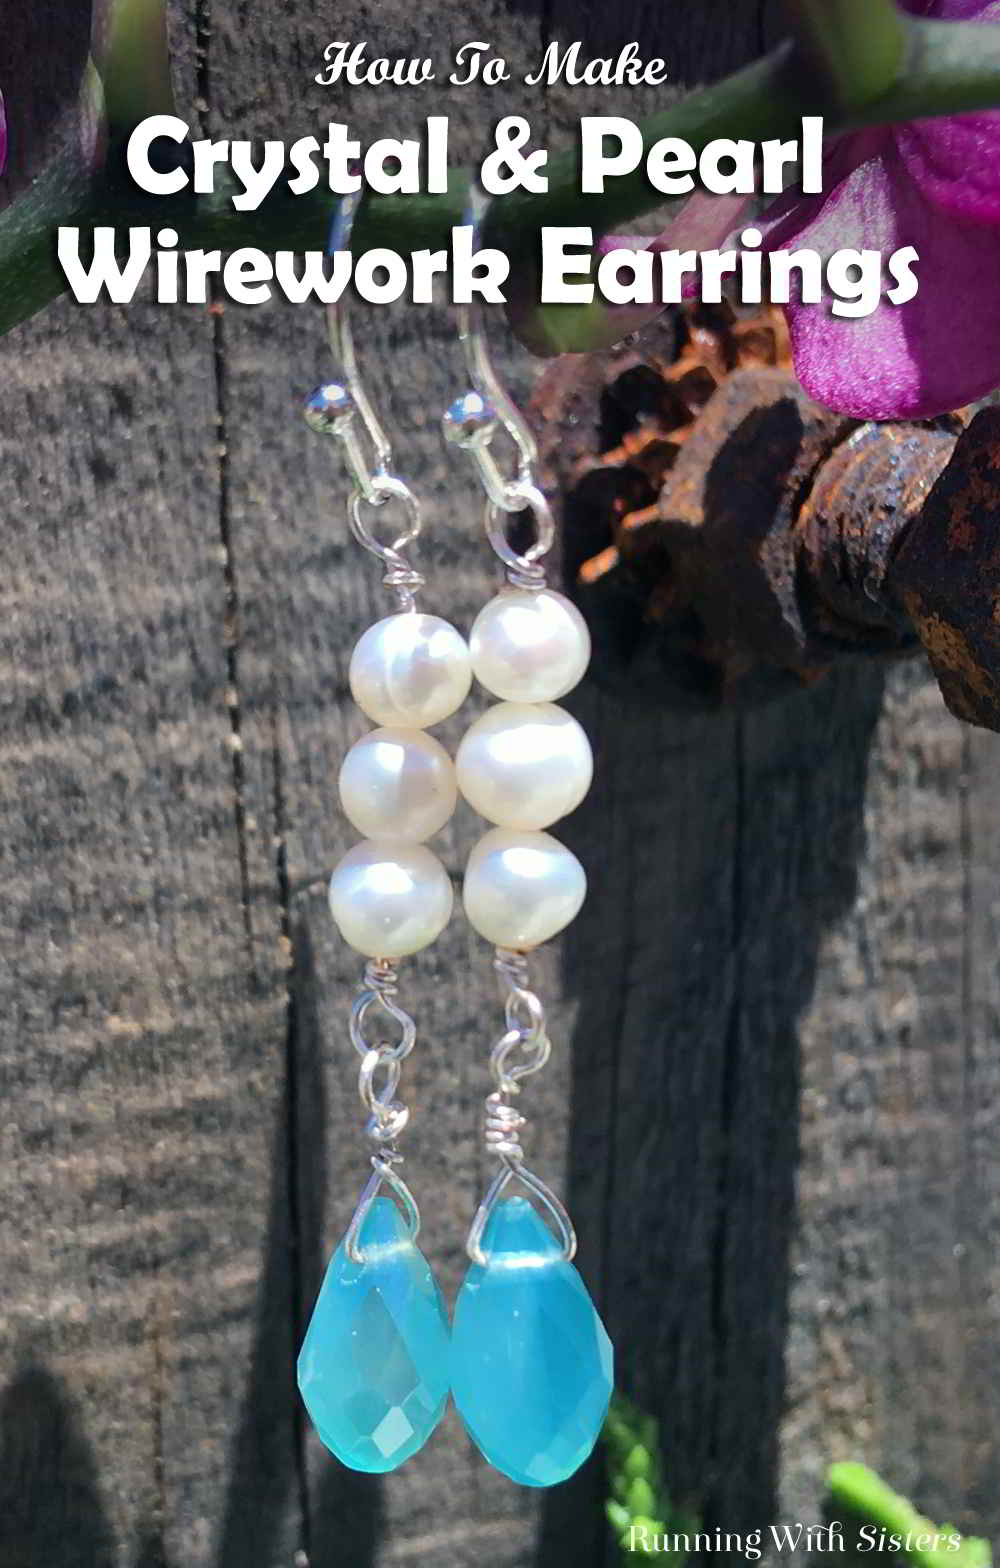 Learn to make wirework earrings with this video wirework jewelry tutorial. These crystal and pearl wirework earrings make a great gift!